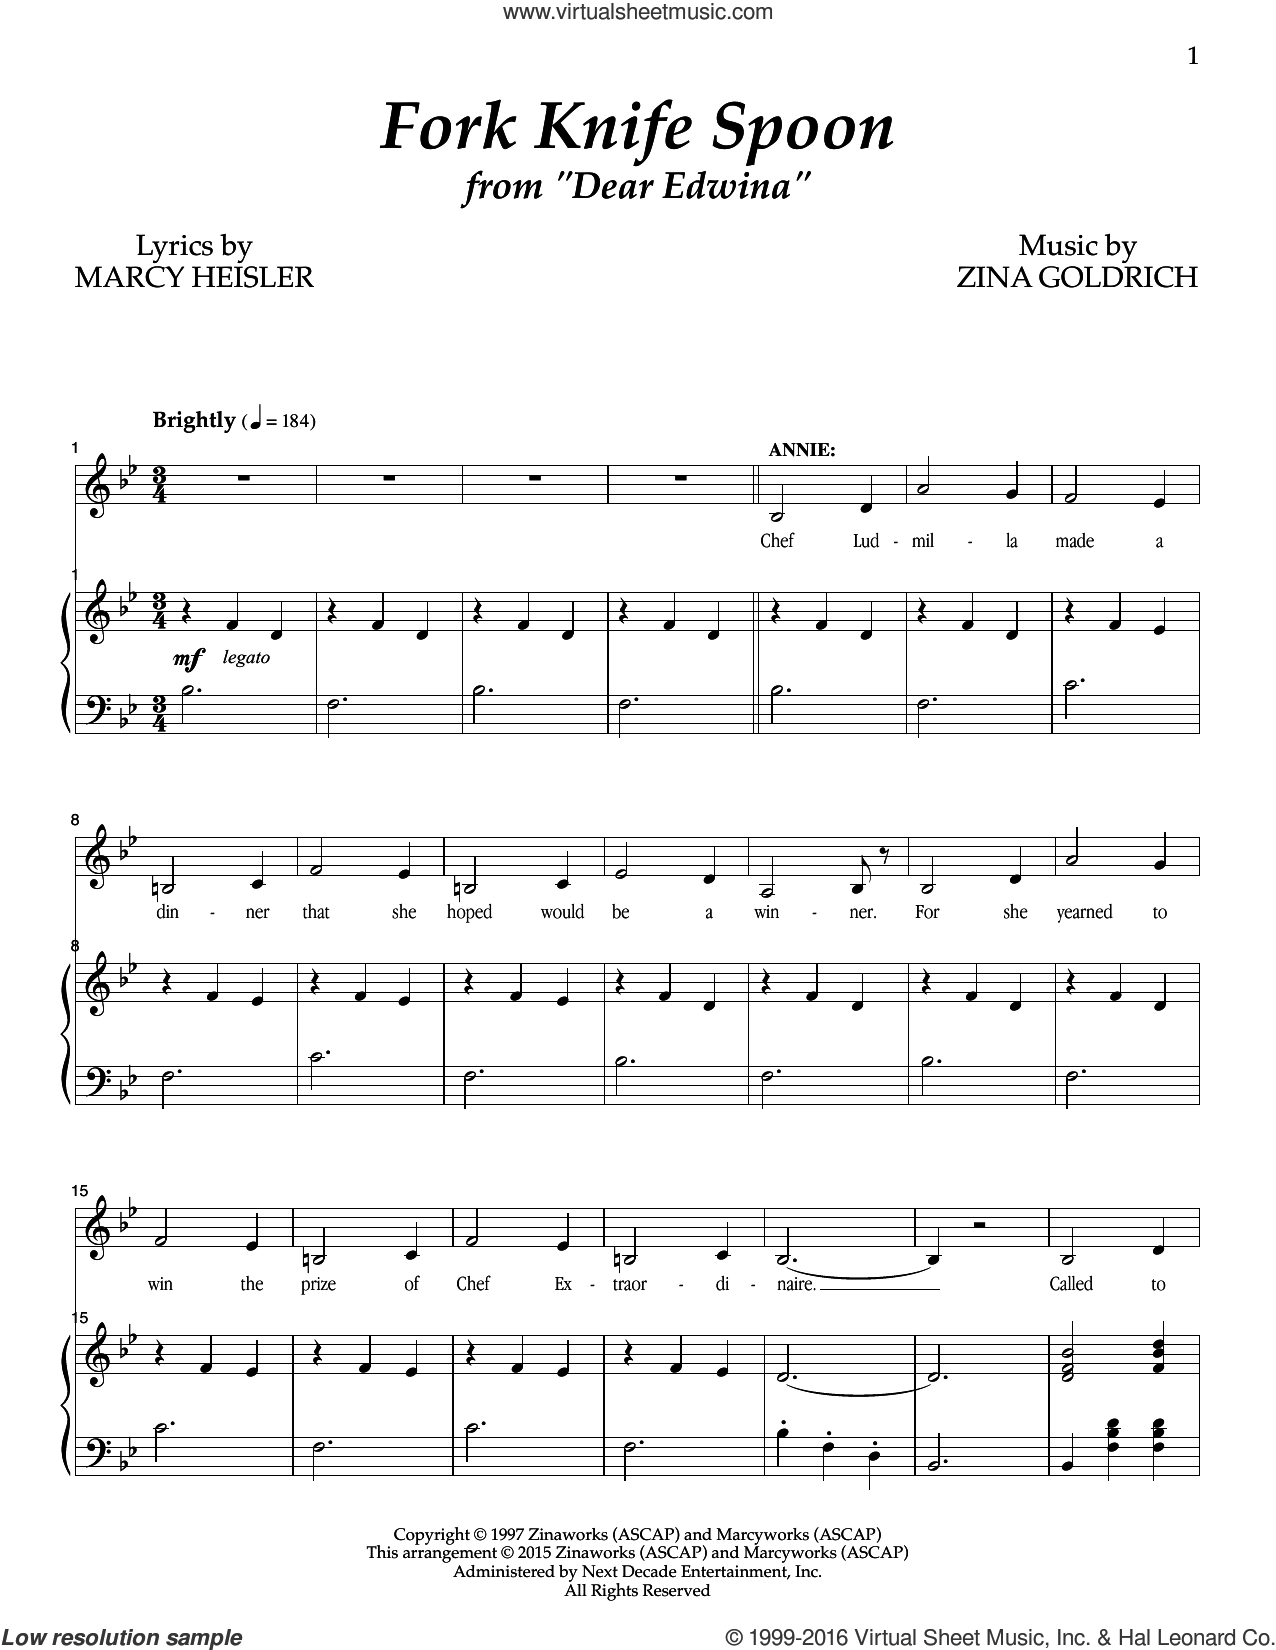 Fork Knife Spoon sheet music for voice and piano by Zina Goldrich, Goldrich & Heisler and Marcy Heisler. Score Image Preview.